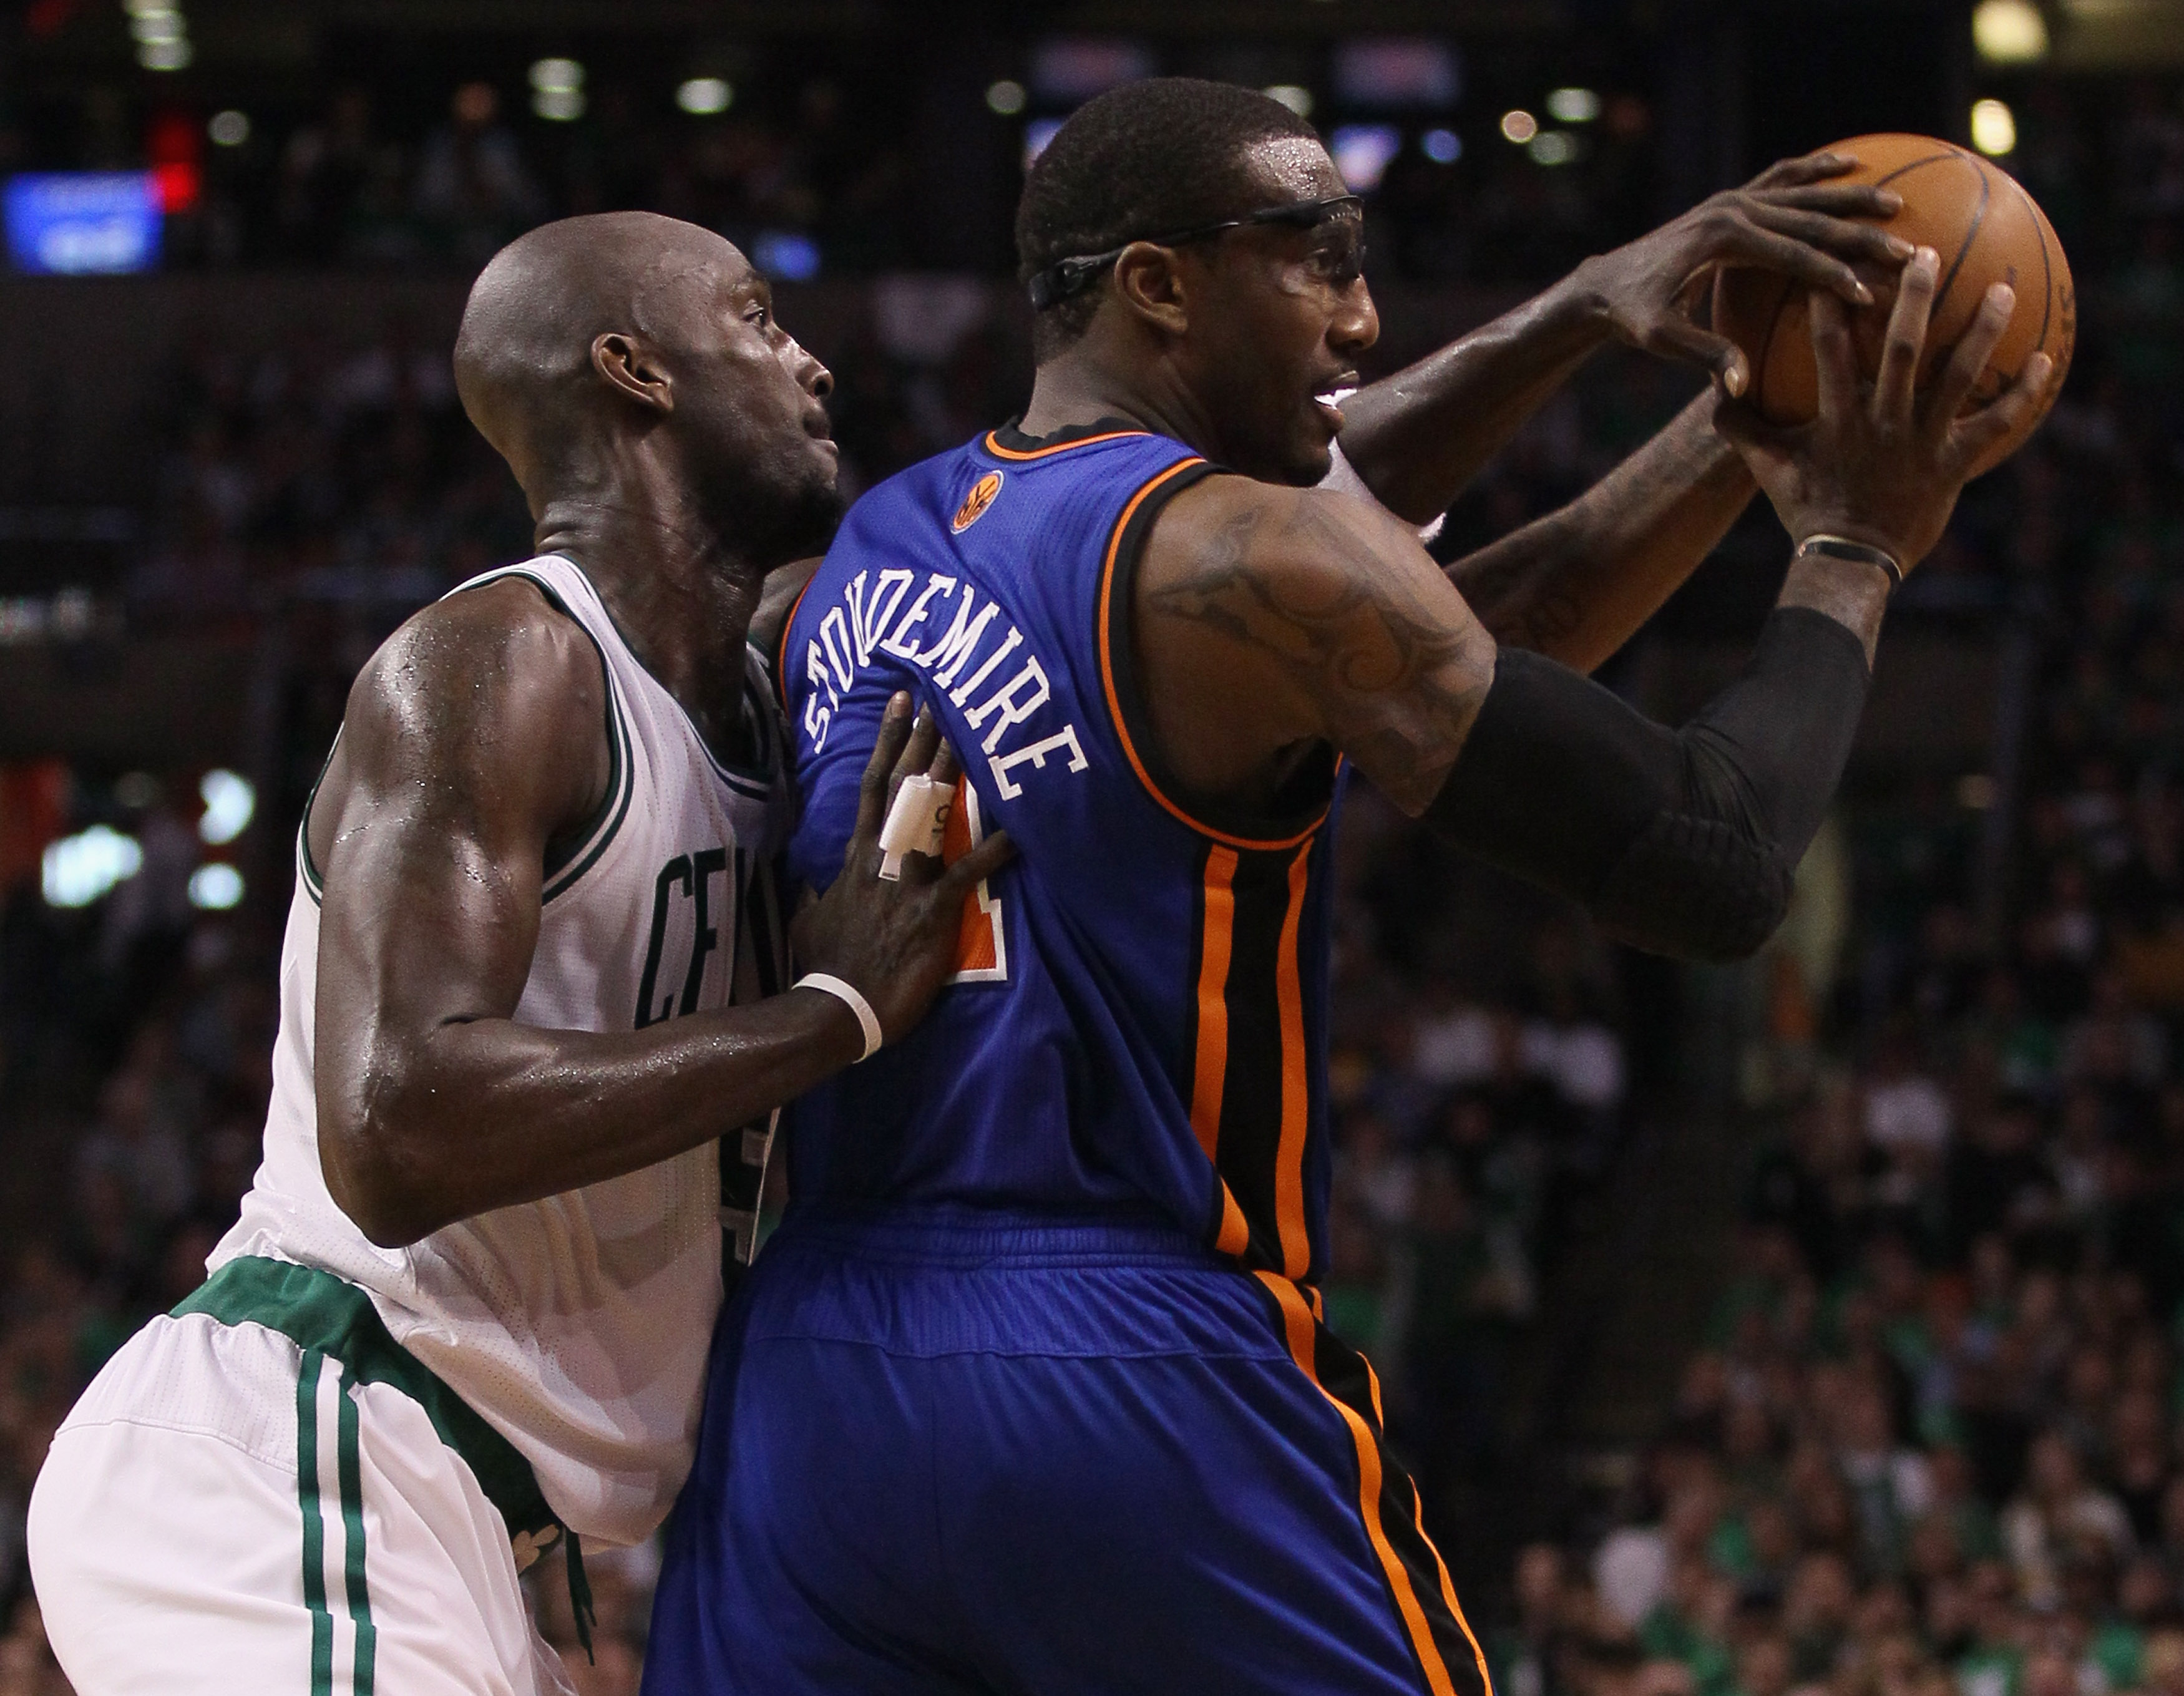 BOSTON, MA - APRIL 17:  Kevin Garnett #5 of the Boston Celtics tries to knock the ball away from Amare Stoudemire #1 of the New York Knicks   in Game One of the Eastern Conference Quarterfinals in the 2011 NBA Playoffs on April 17, 2011 at the TD Garden i